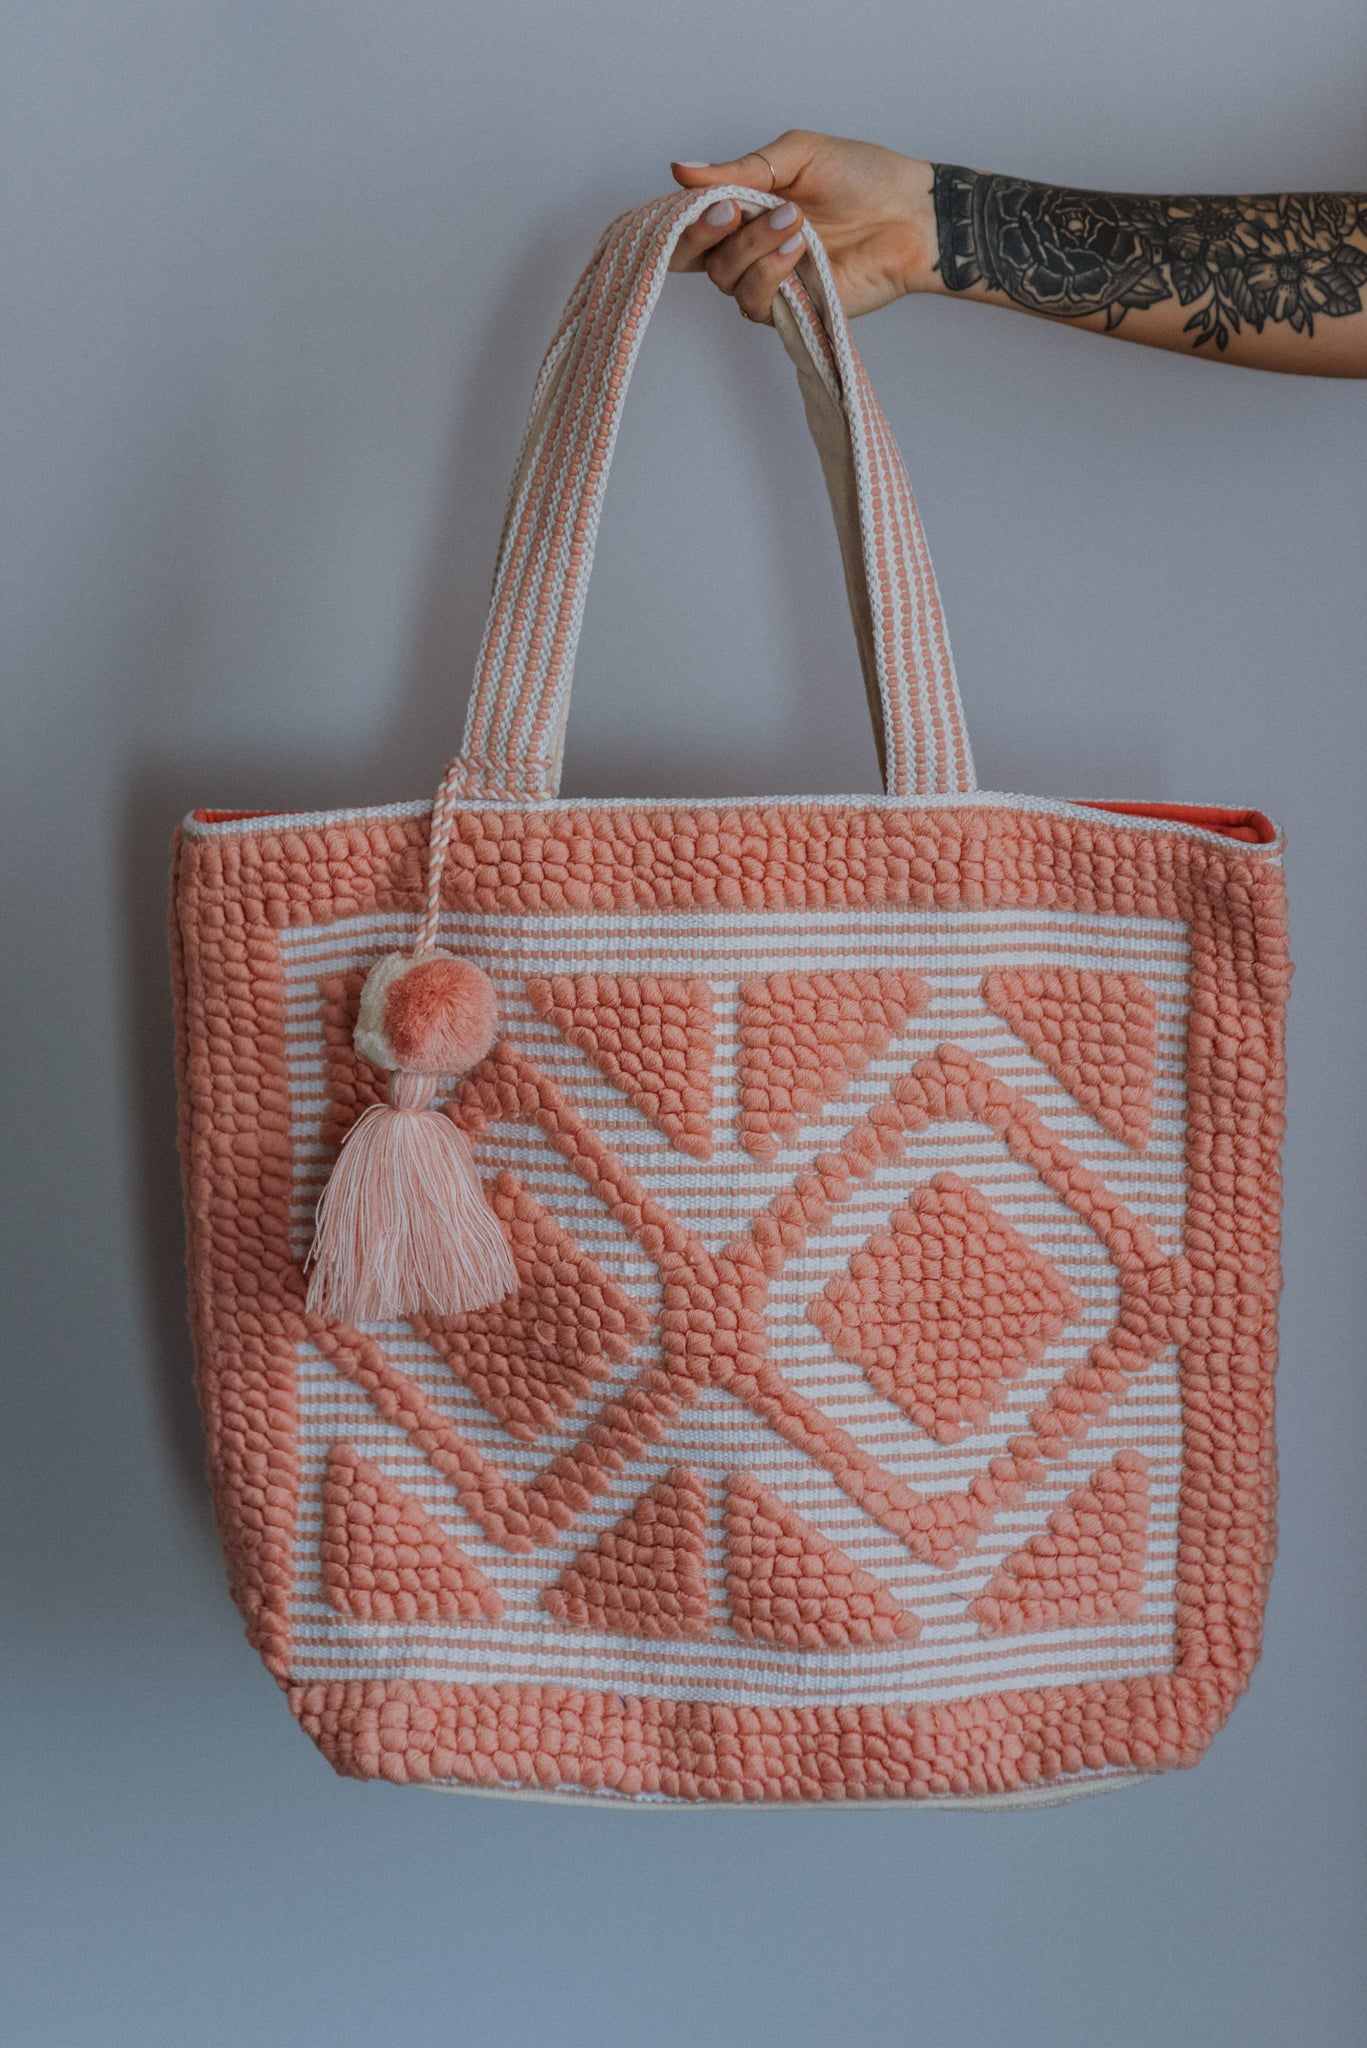 xSOLD OUTx Sunny Dreams Tassel Tote Bag in Pink